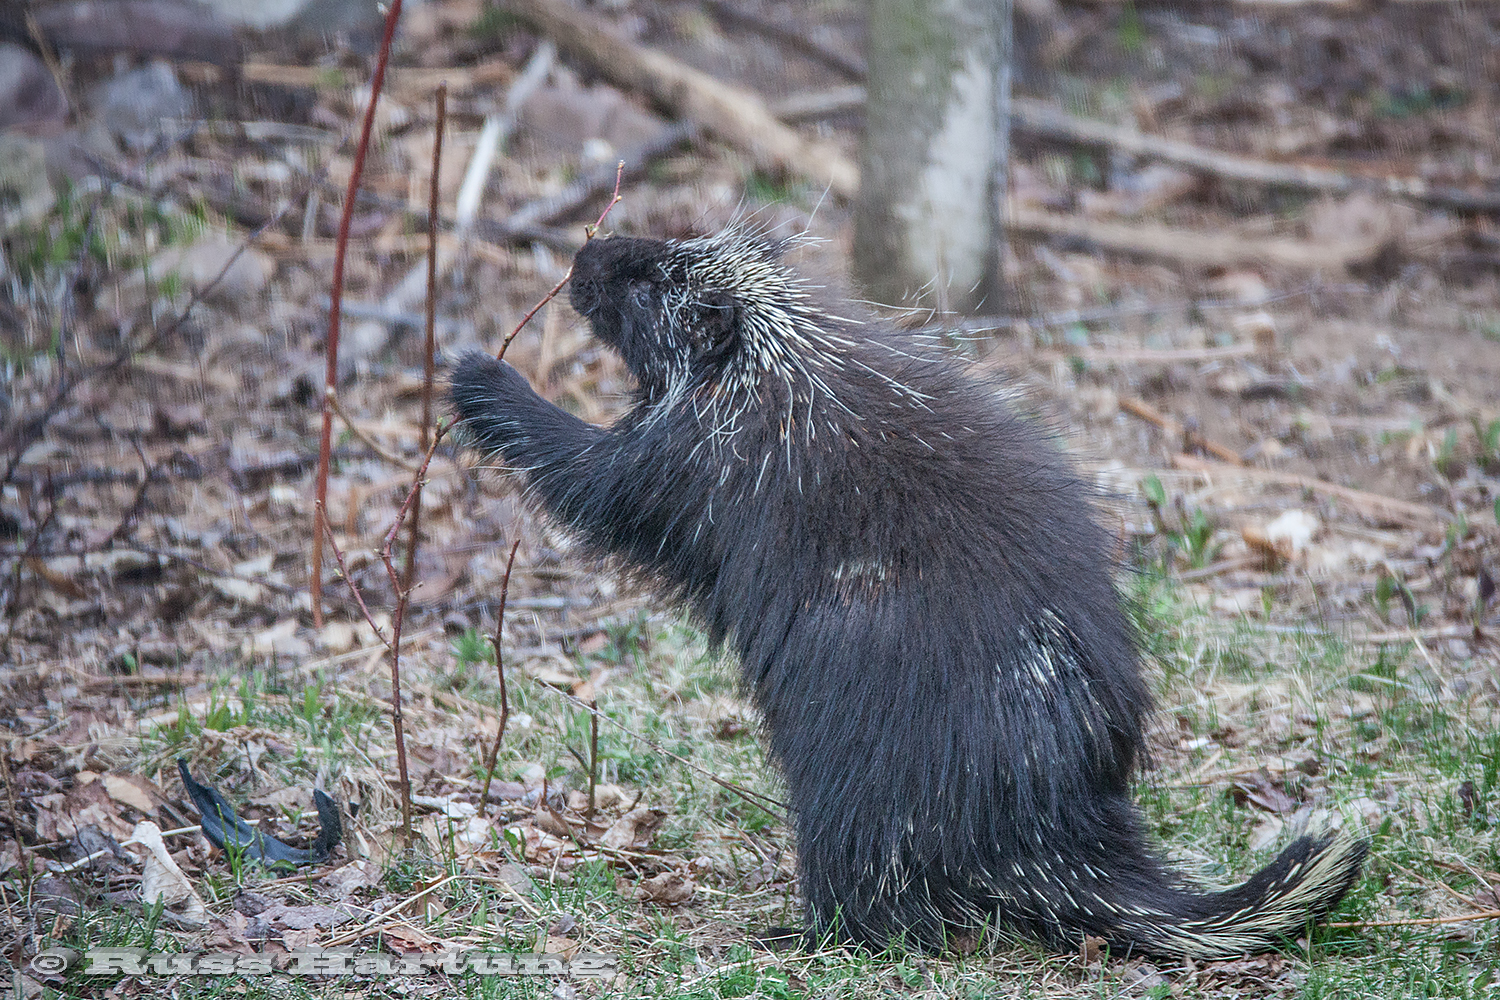 A porcupine eating buds off a sapling.